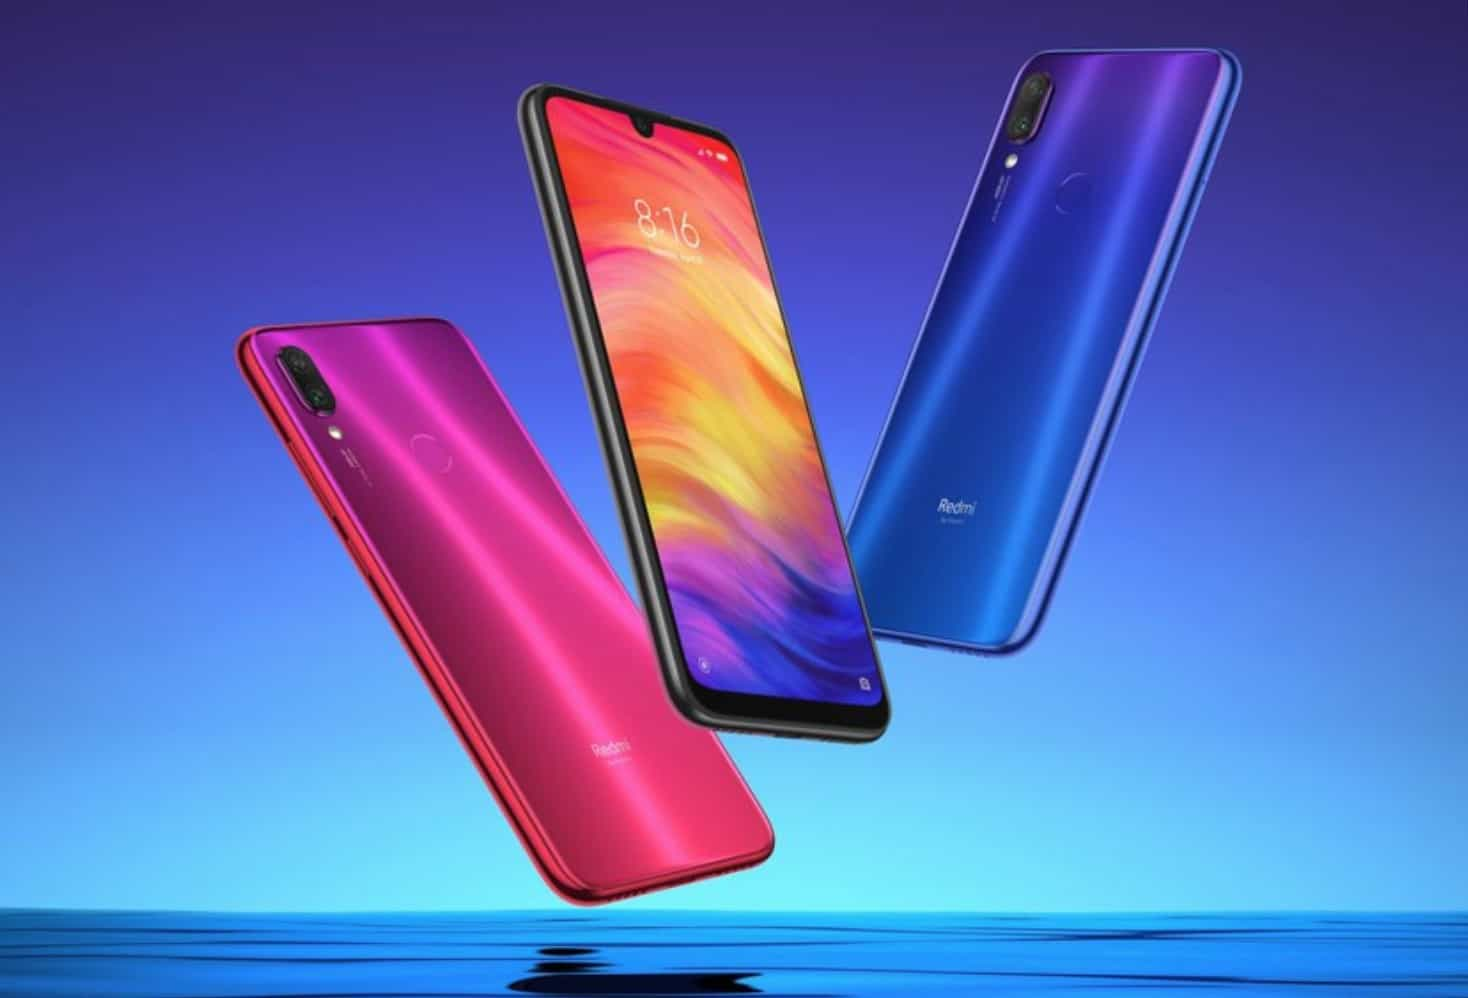 Redmi Note 7 Pro Alternatives - 5 Smartphones You Can Buy Instead! - 2